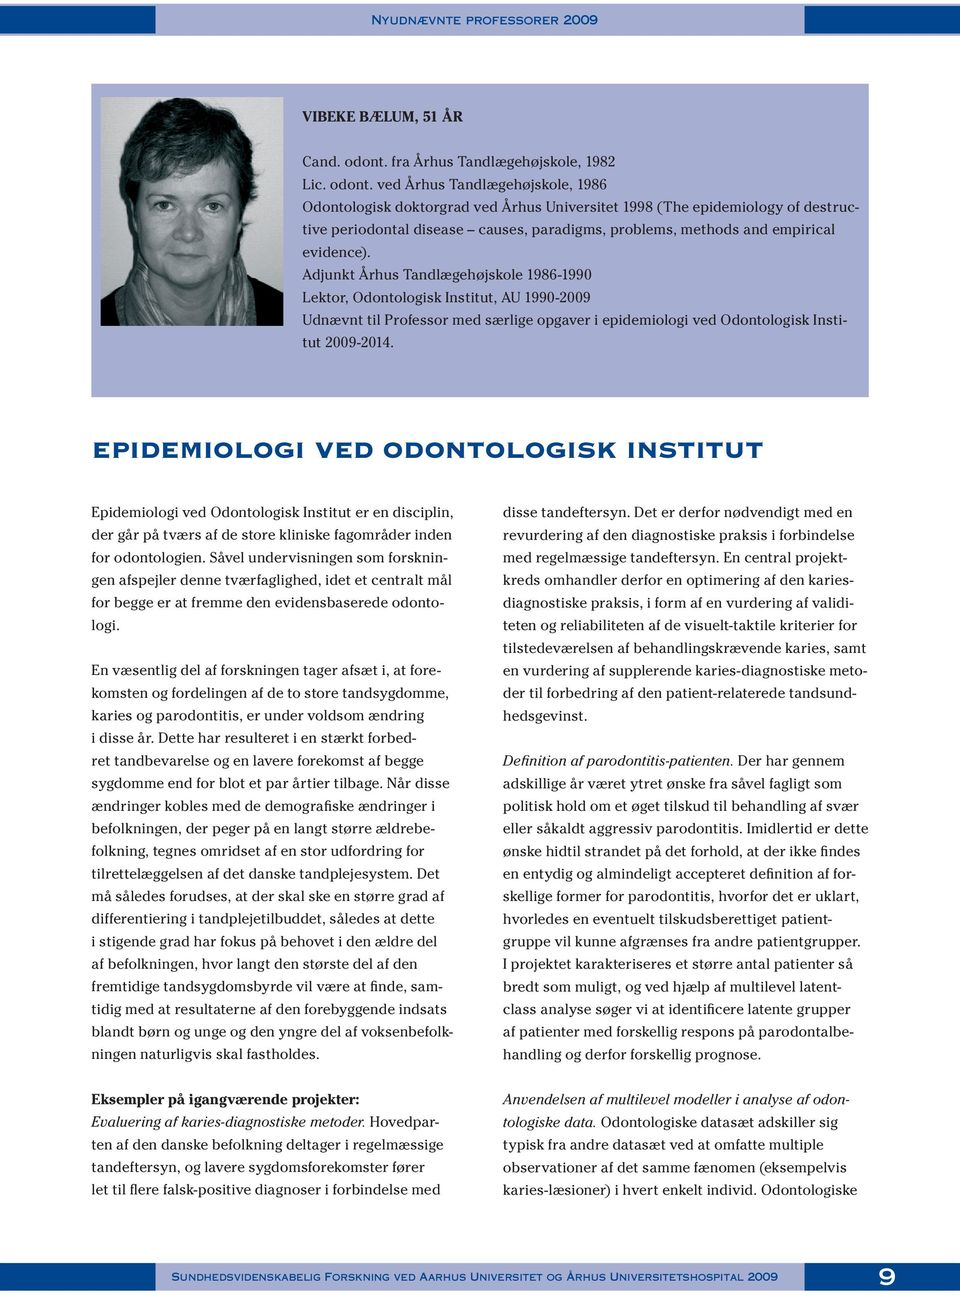 ved Århus Tandlægehøjskole, 1986 Odontologisk doktorgrad ved Århus Universitet 1998 (The epidemiology of destructive periodontal disease causes, paradigms, problems, methods and empirical evidence).